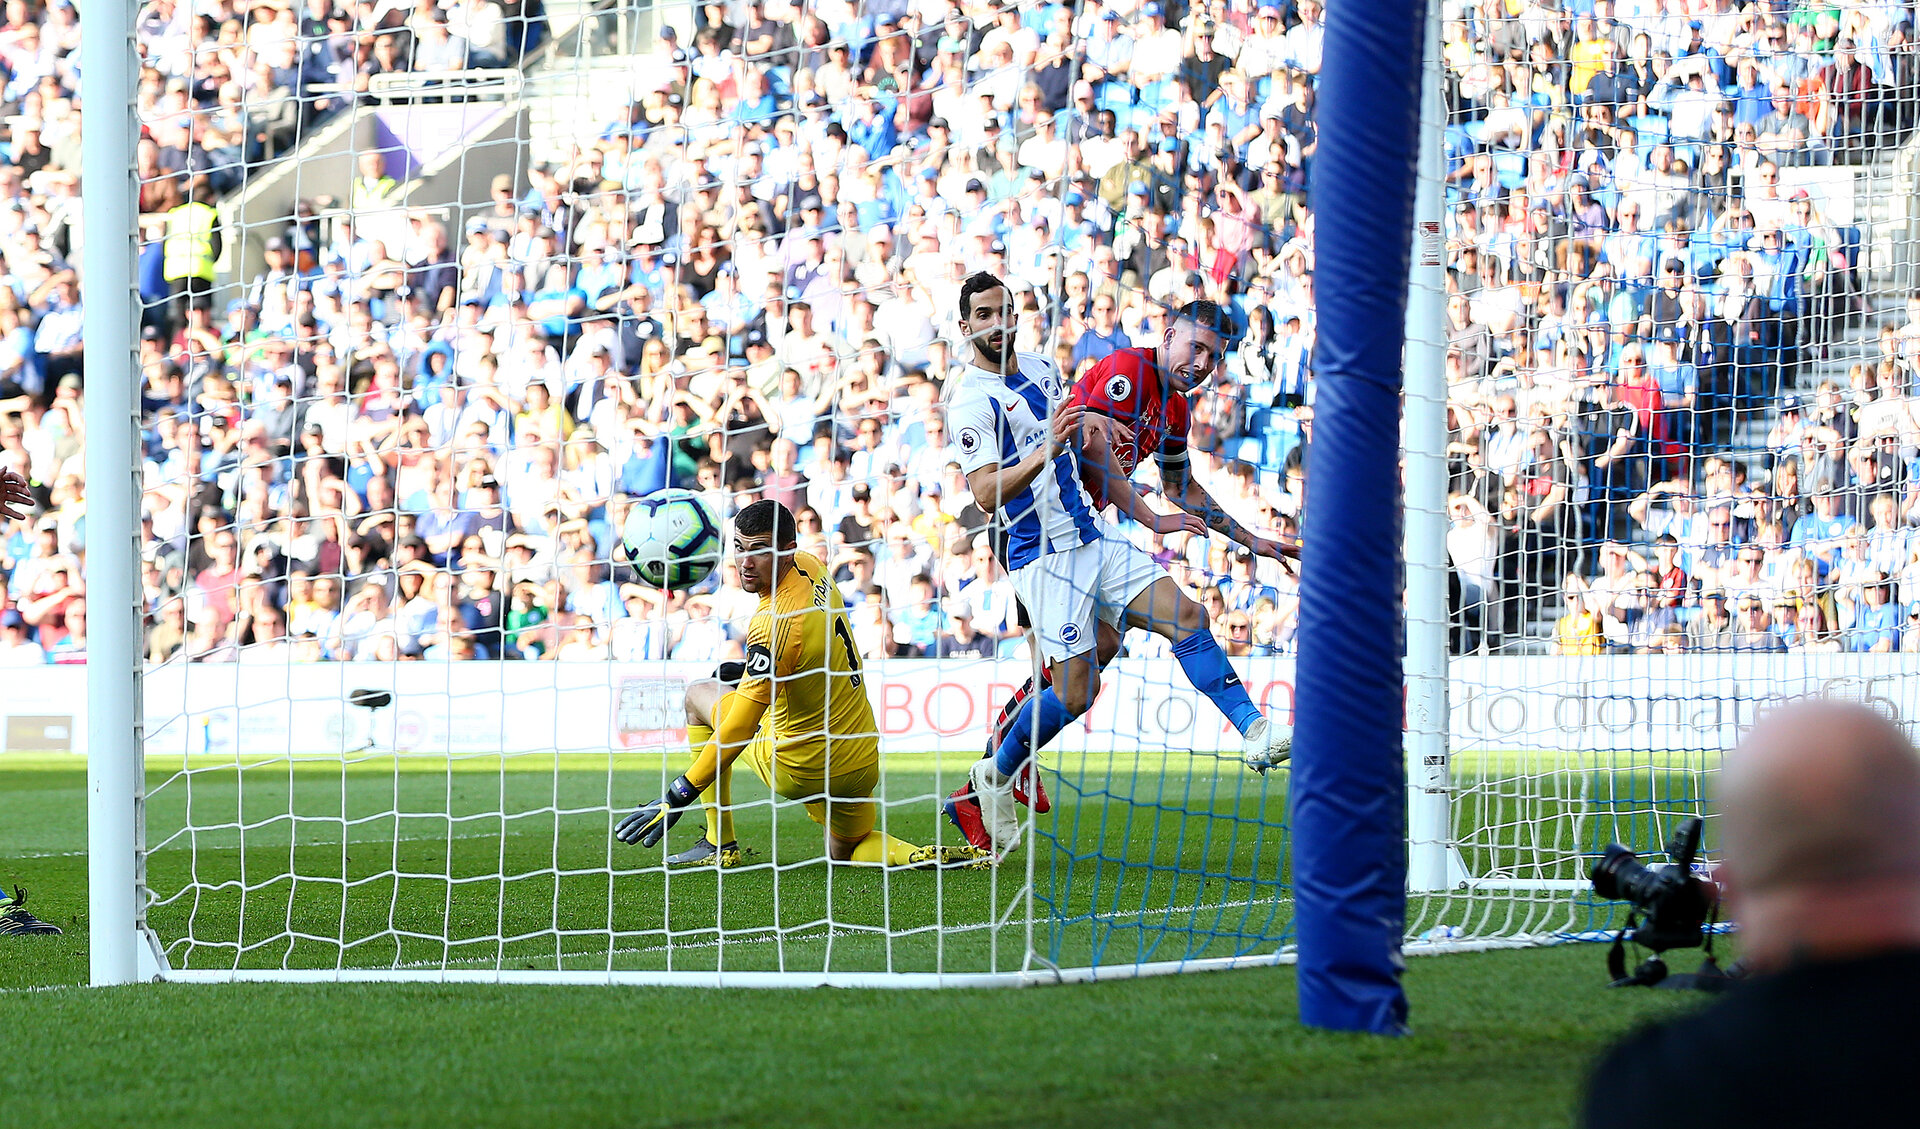 BRIGHTON, ENGLAND - MARCH 30: Pierre-Emile Hojbjerg of Southampton scores during the Premier League match between Brighton & Hove Albion and Southampton FC at American Express Community Stadium on March 30, 2019 in Brighton, United Kingdom. (Photo by Matt Watson/Southampton FC via Getty Images)